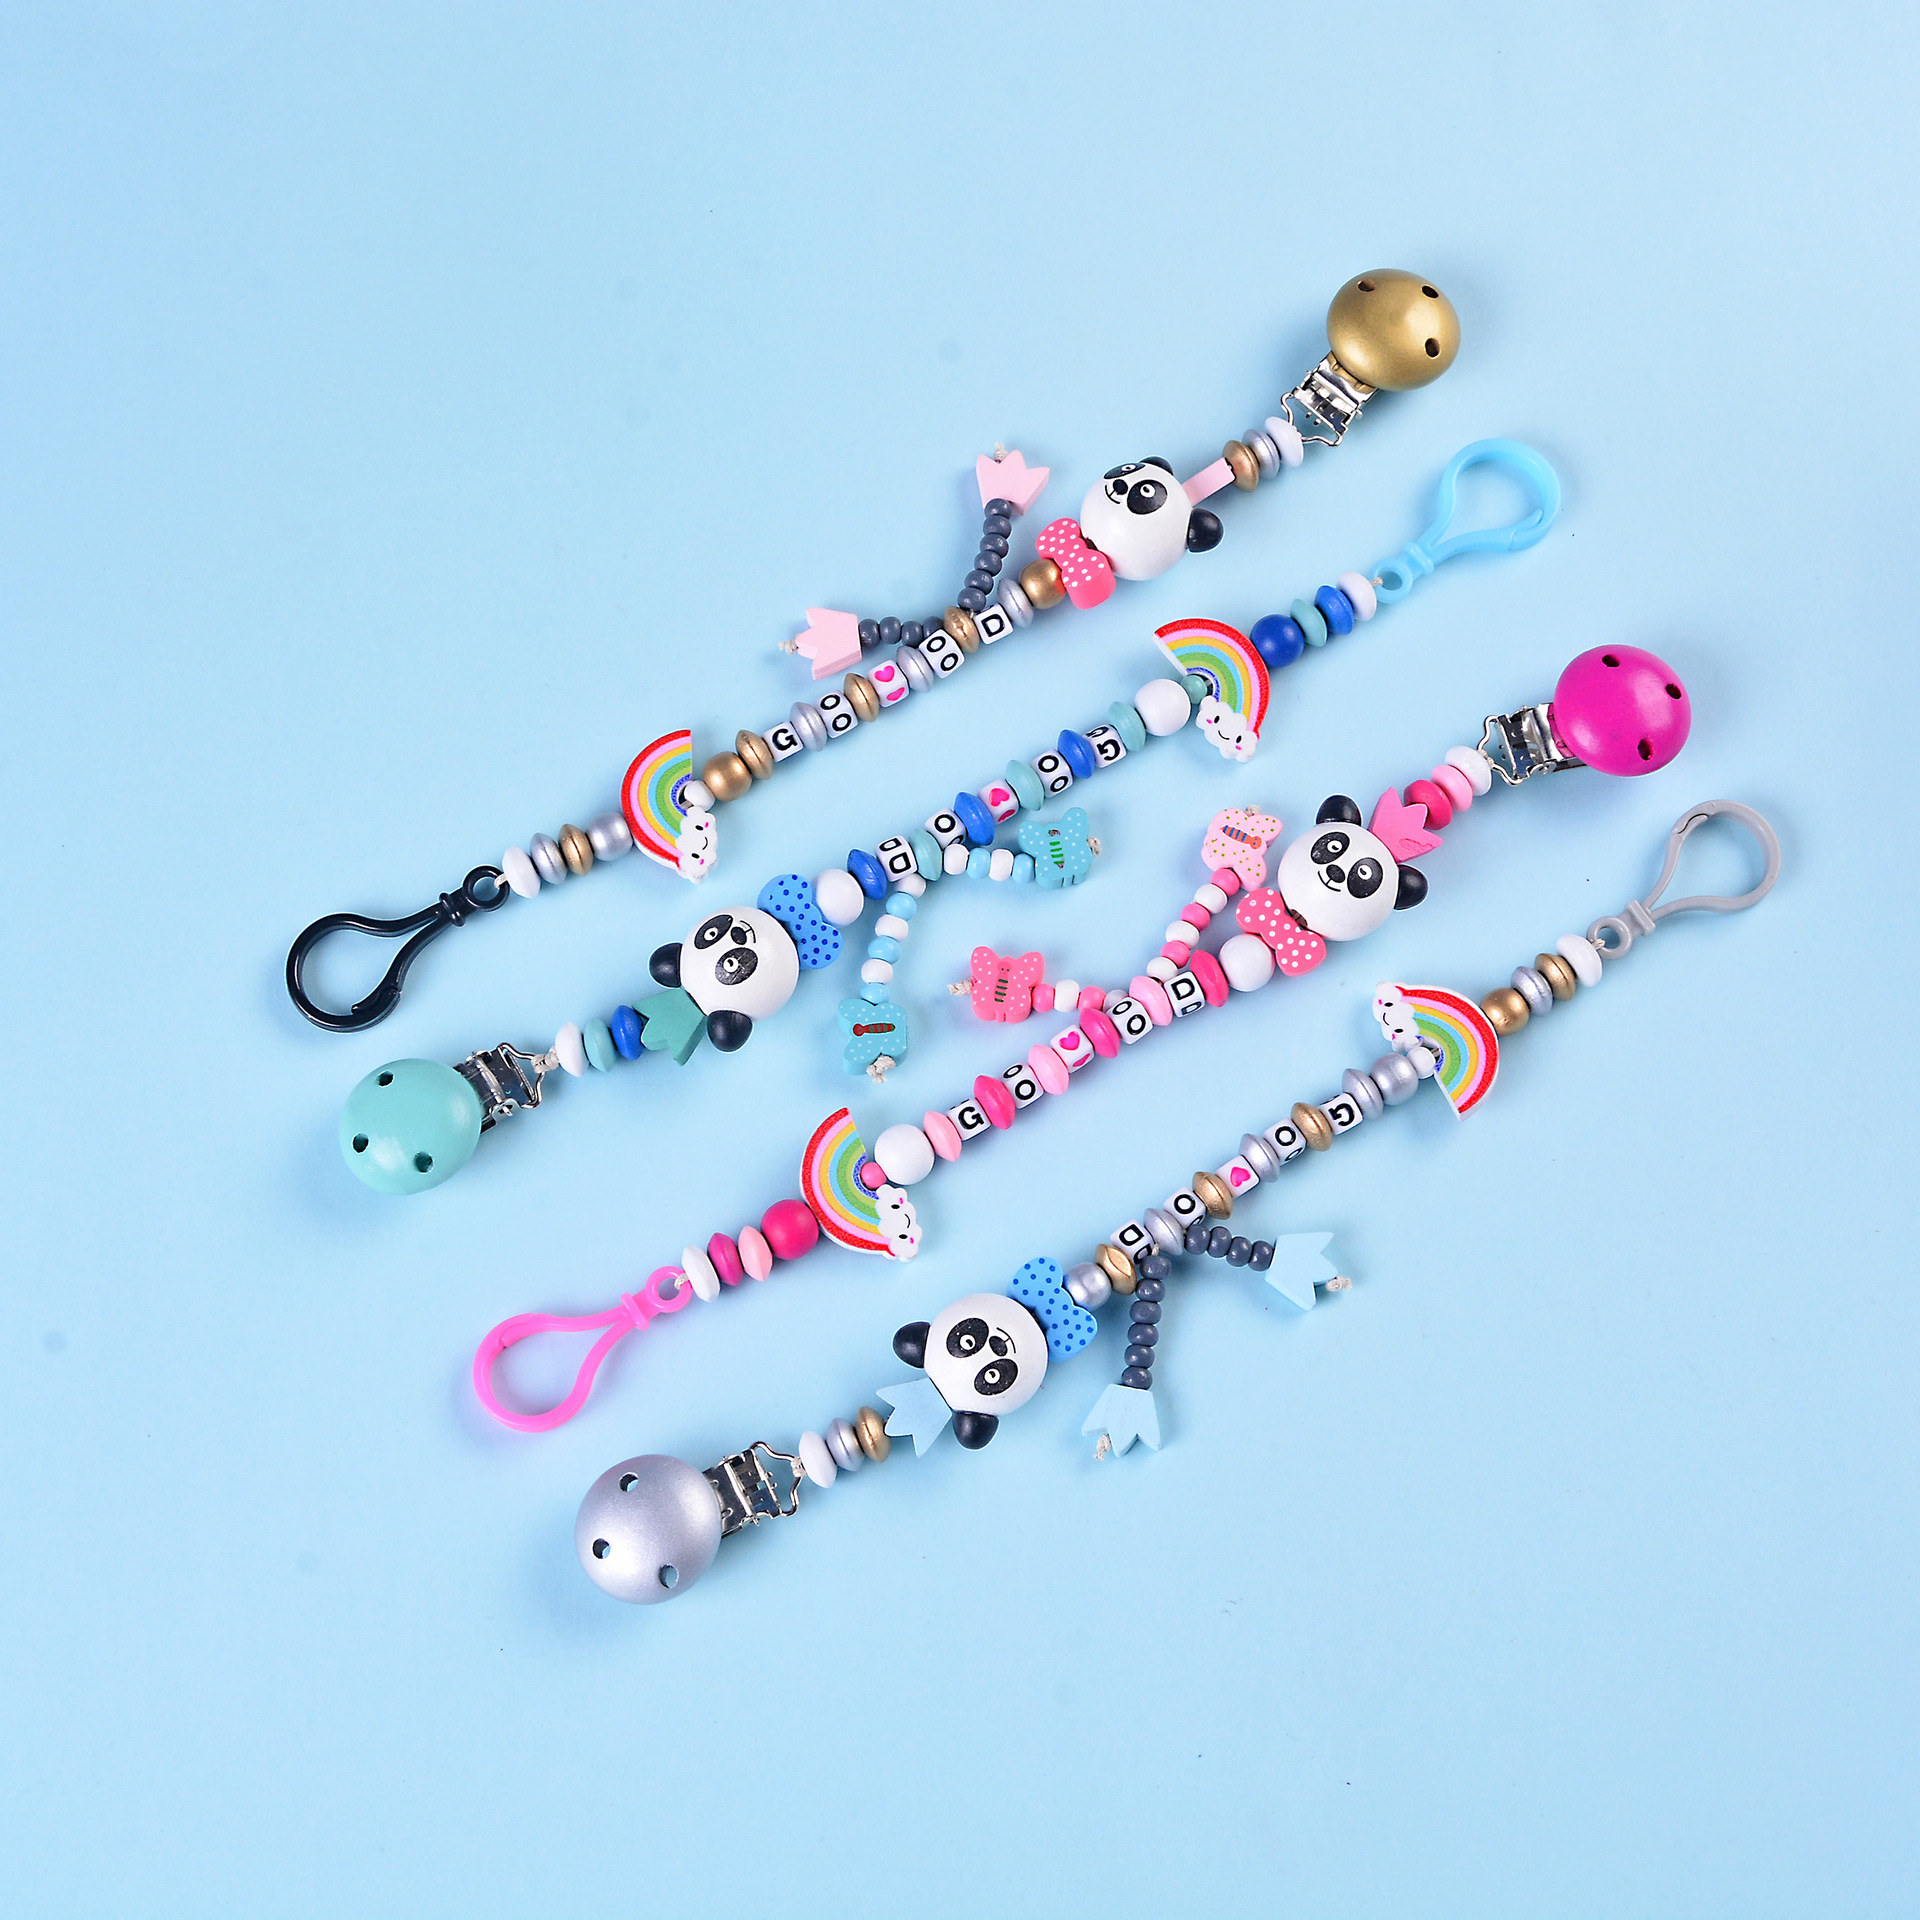 Baby Handmade Wood Silicone Pacifier Chains Safety Beads Dummy Panda Chain Baby Eco-friendly Pacifier Clips Holder ChainBaby Handmade Wood Silicone Pacifier Chains Safety Beads Dummy Panda Chain Baby Eco-friendly Pacifier Clips Holder Chain